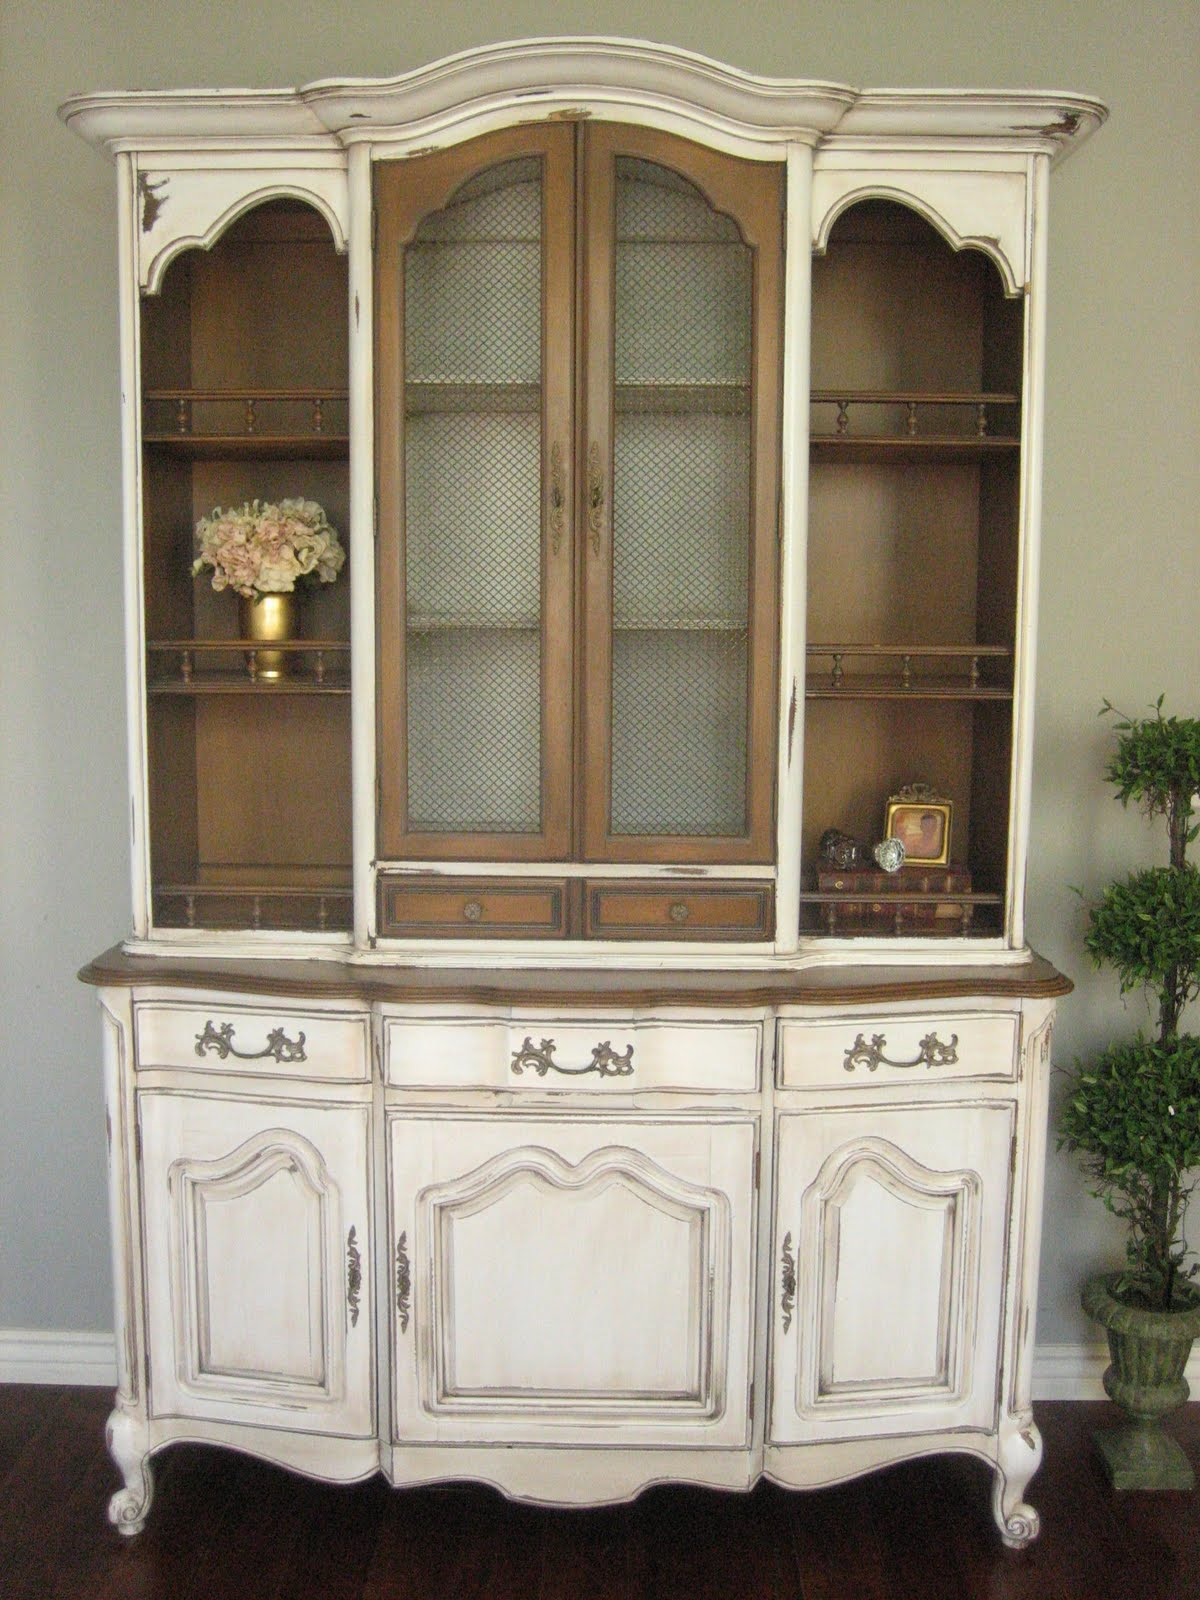 The New French Dining Hutch